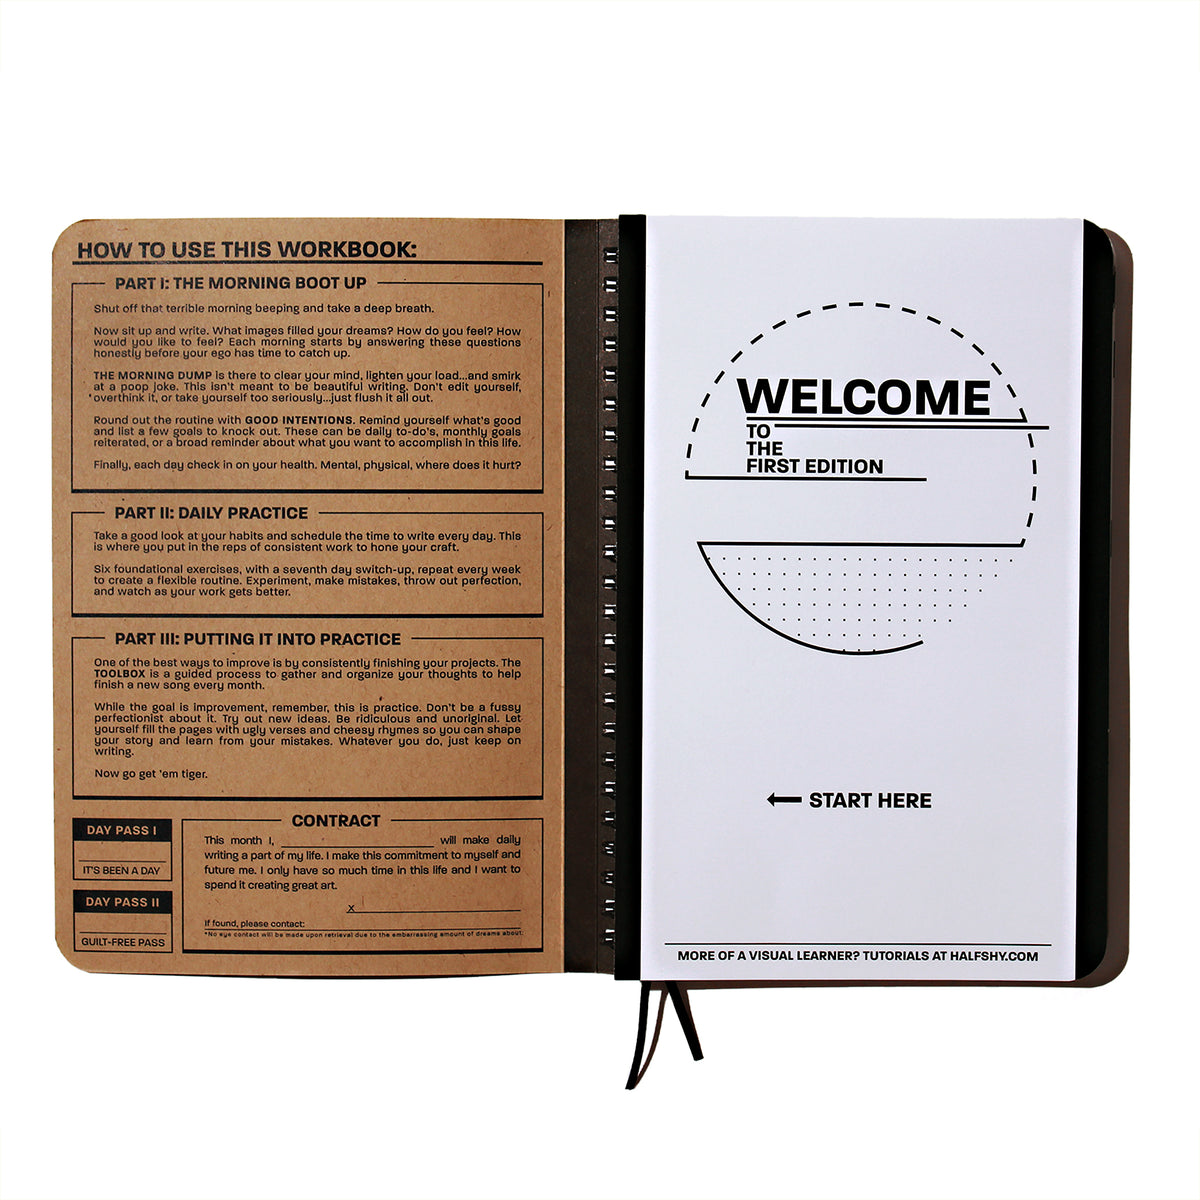 Practice Workbook open to the welcome page front